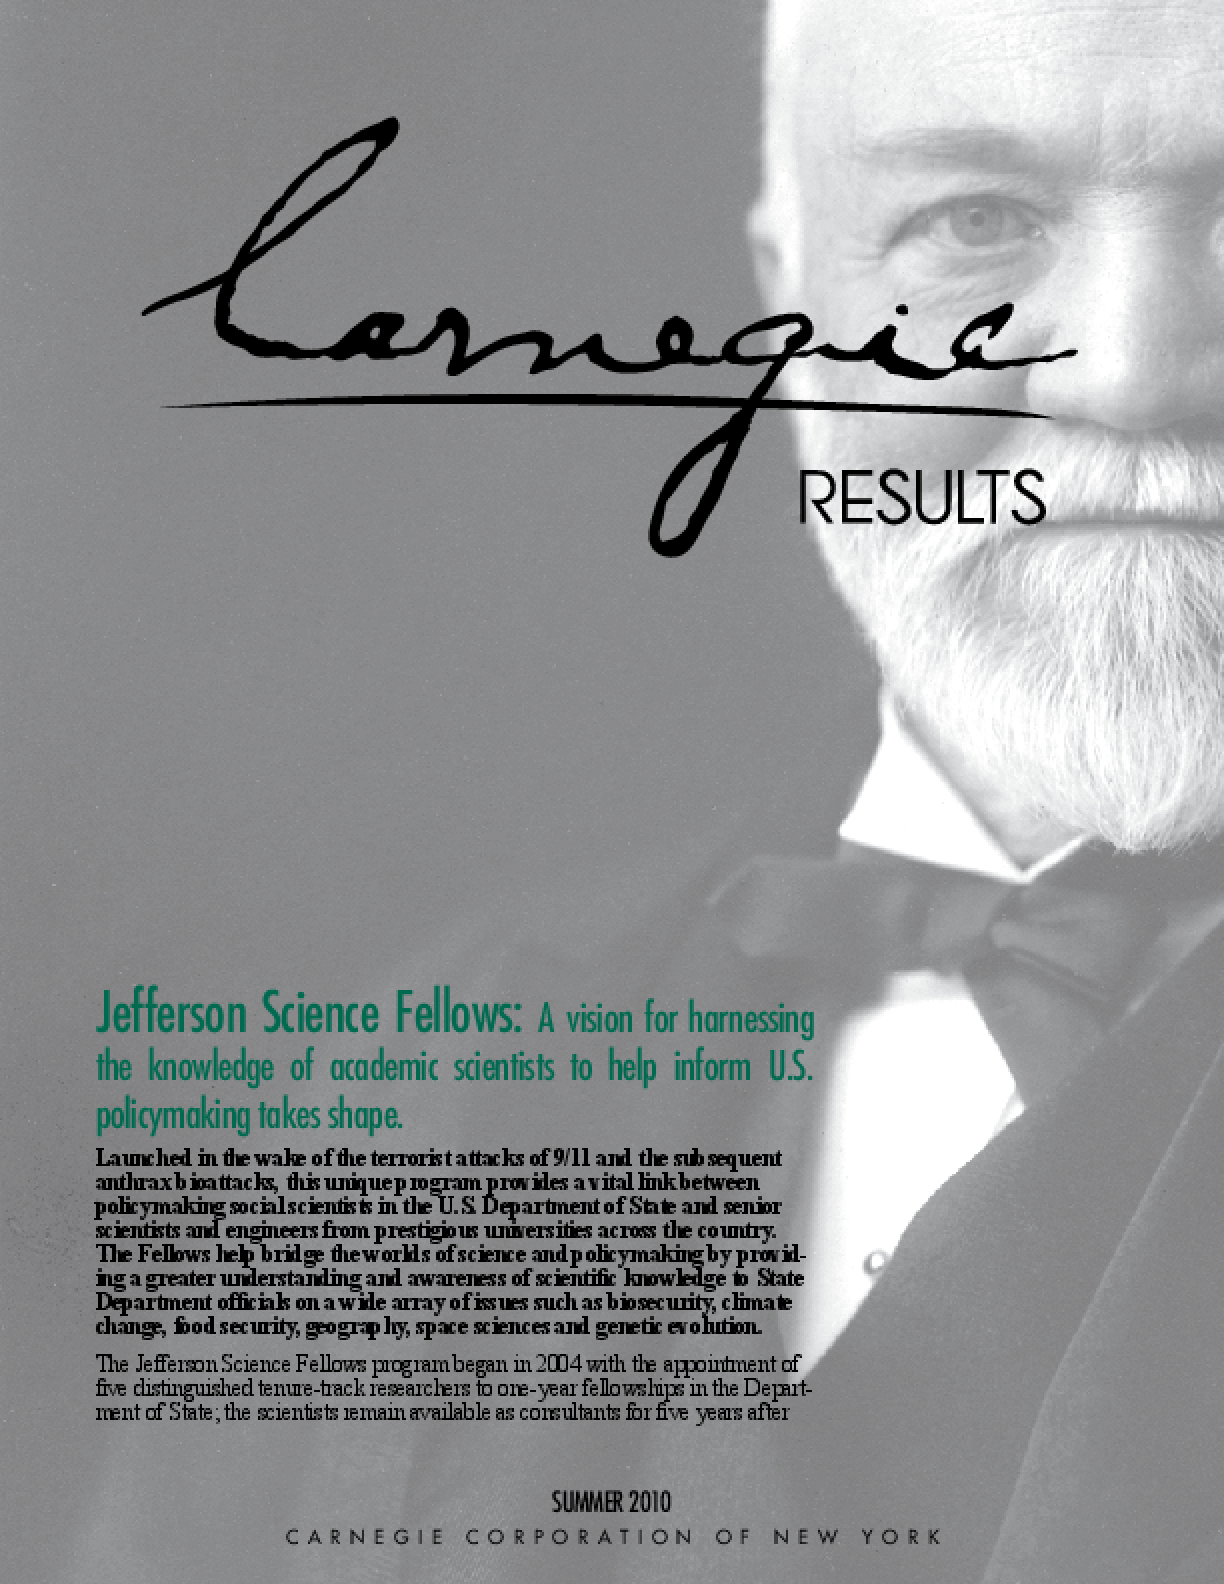 Carnegie Results: Jefferson Science Fellows